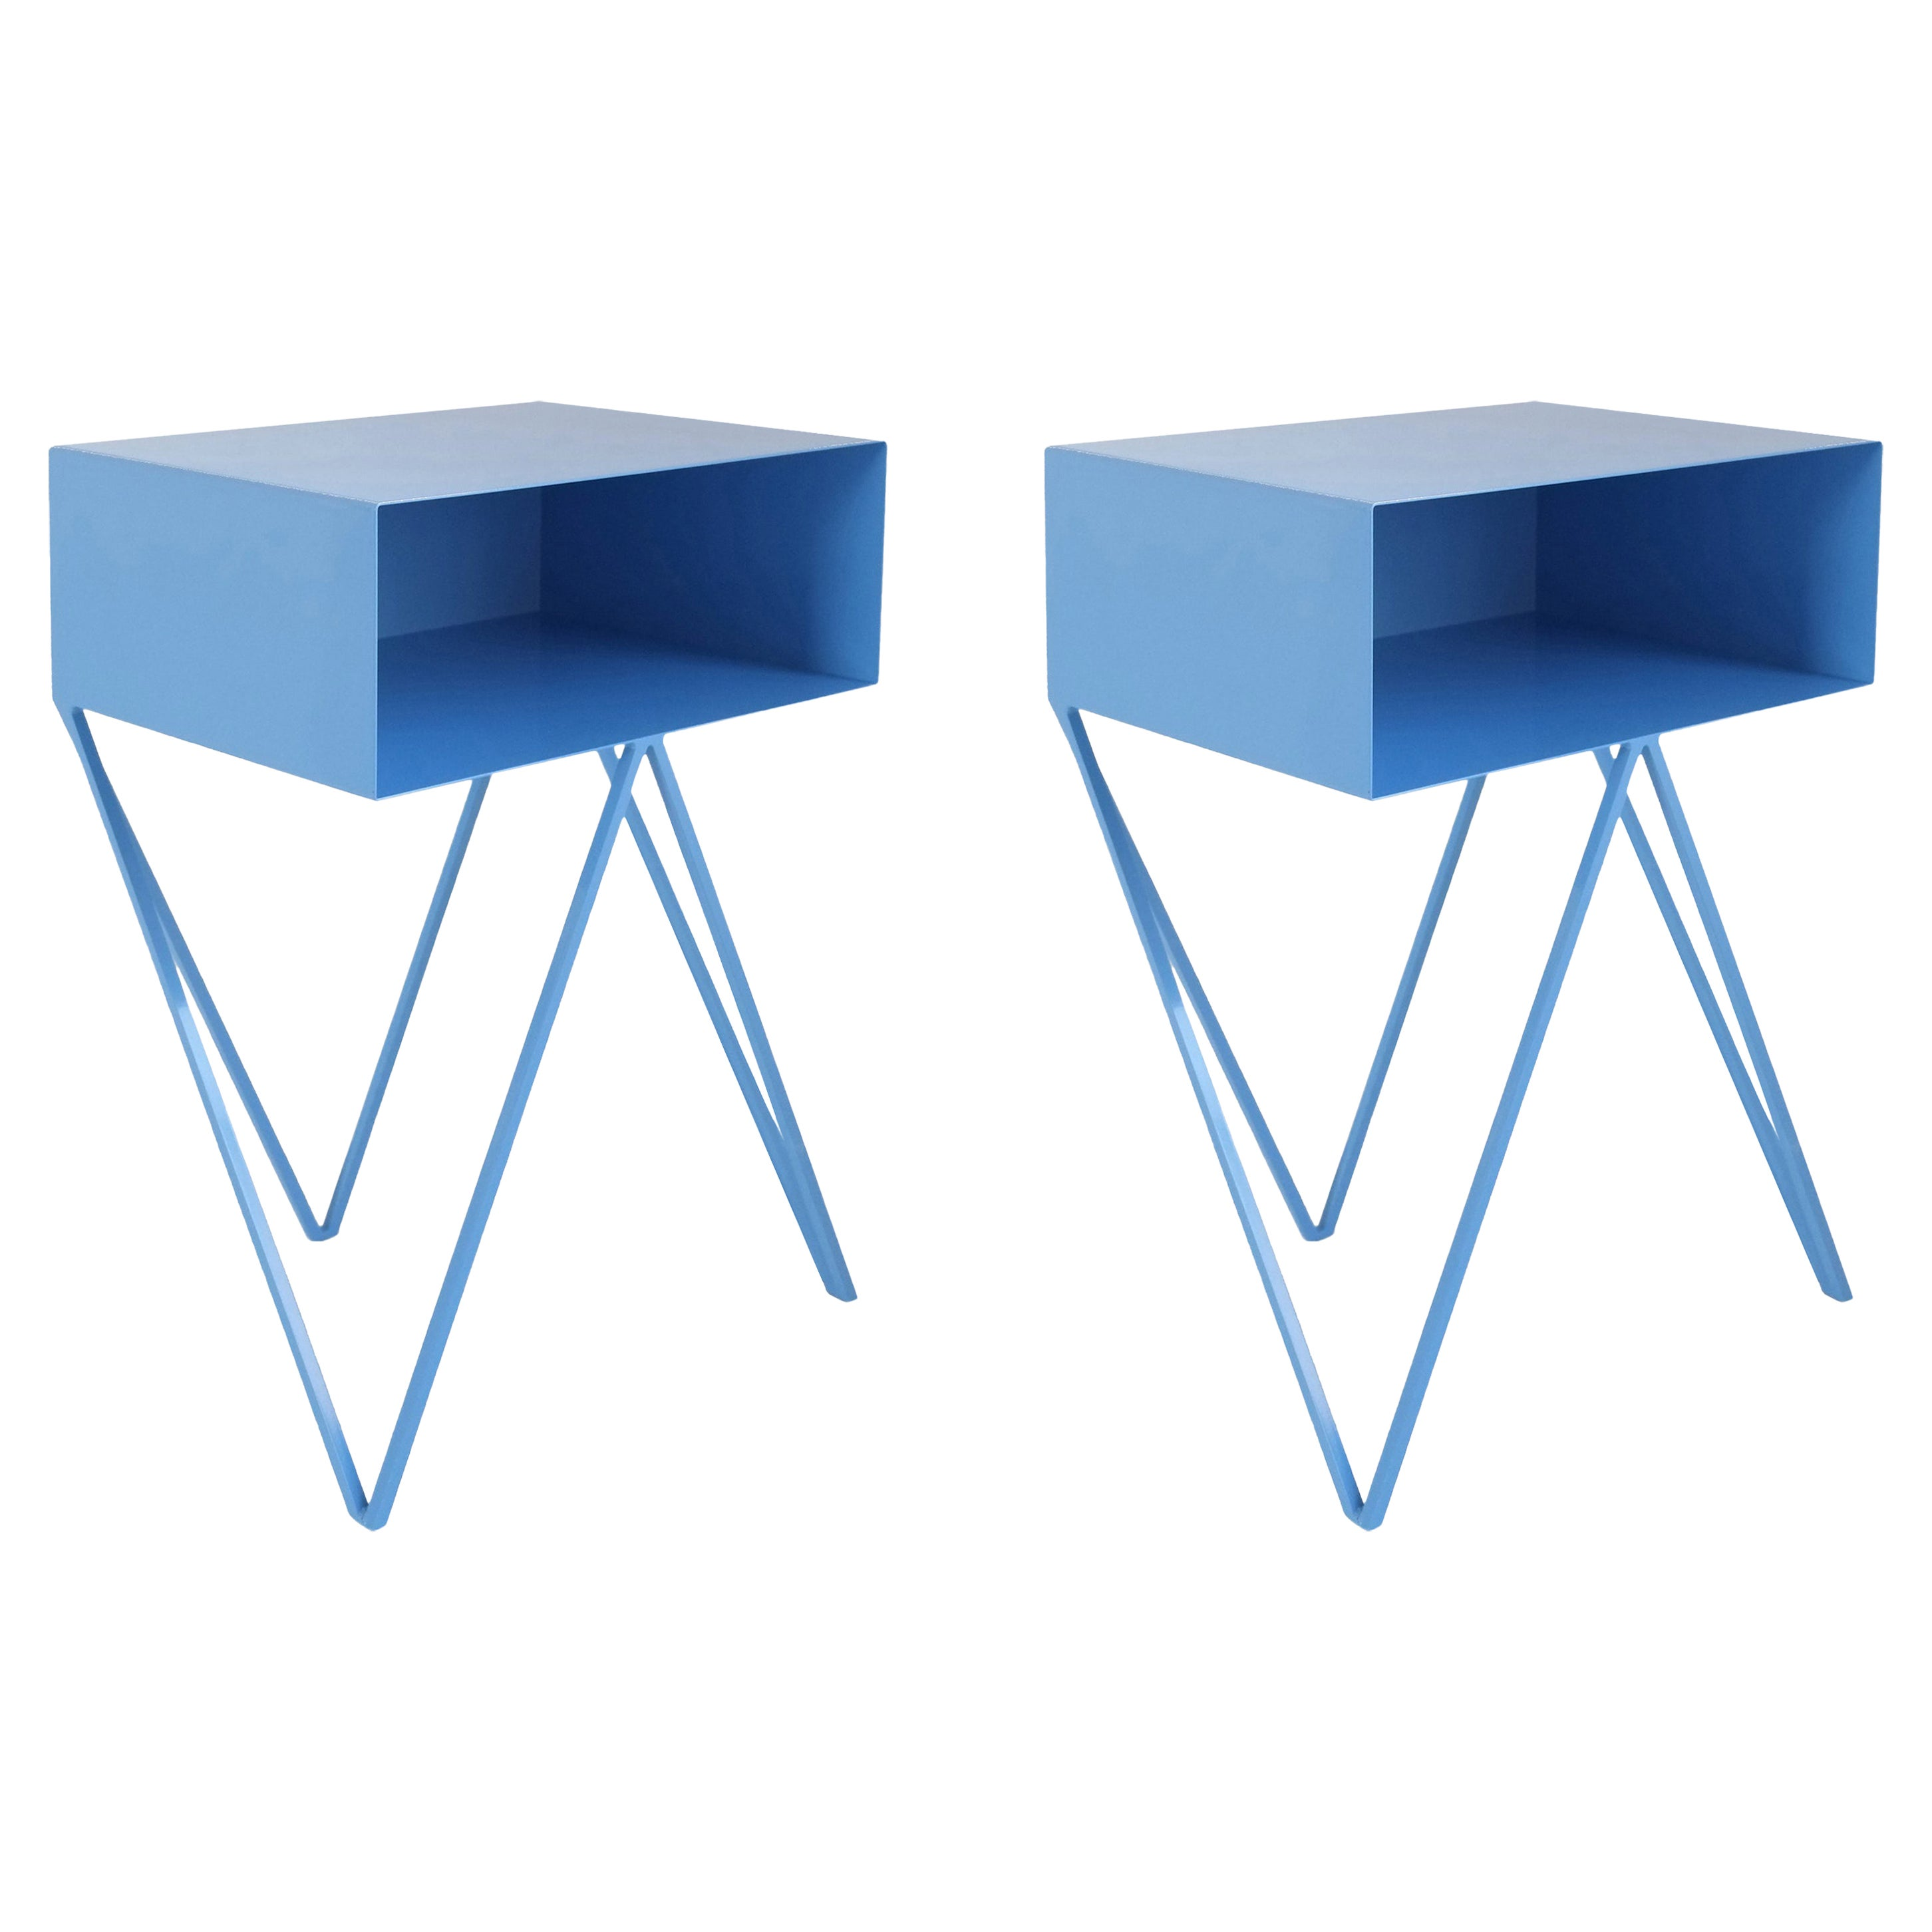 Pair of Blue Powder Coated Steel Robot Bedside Tables Side Table